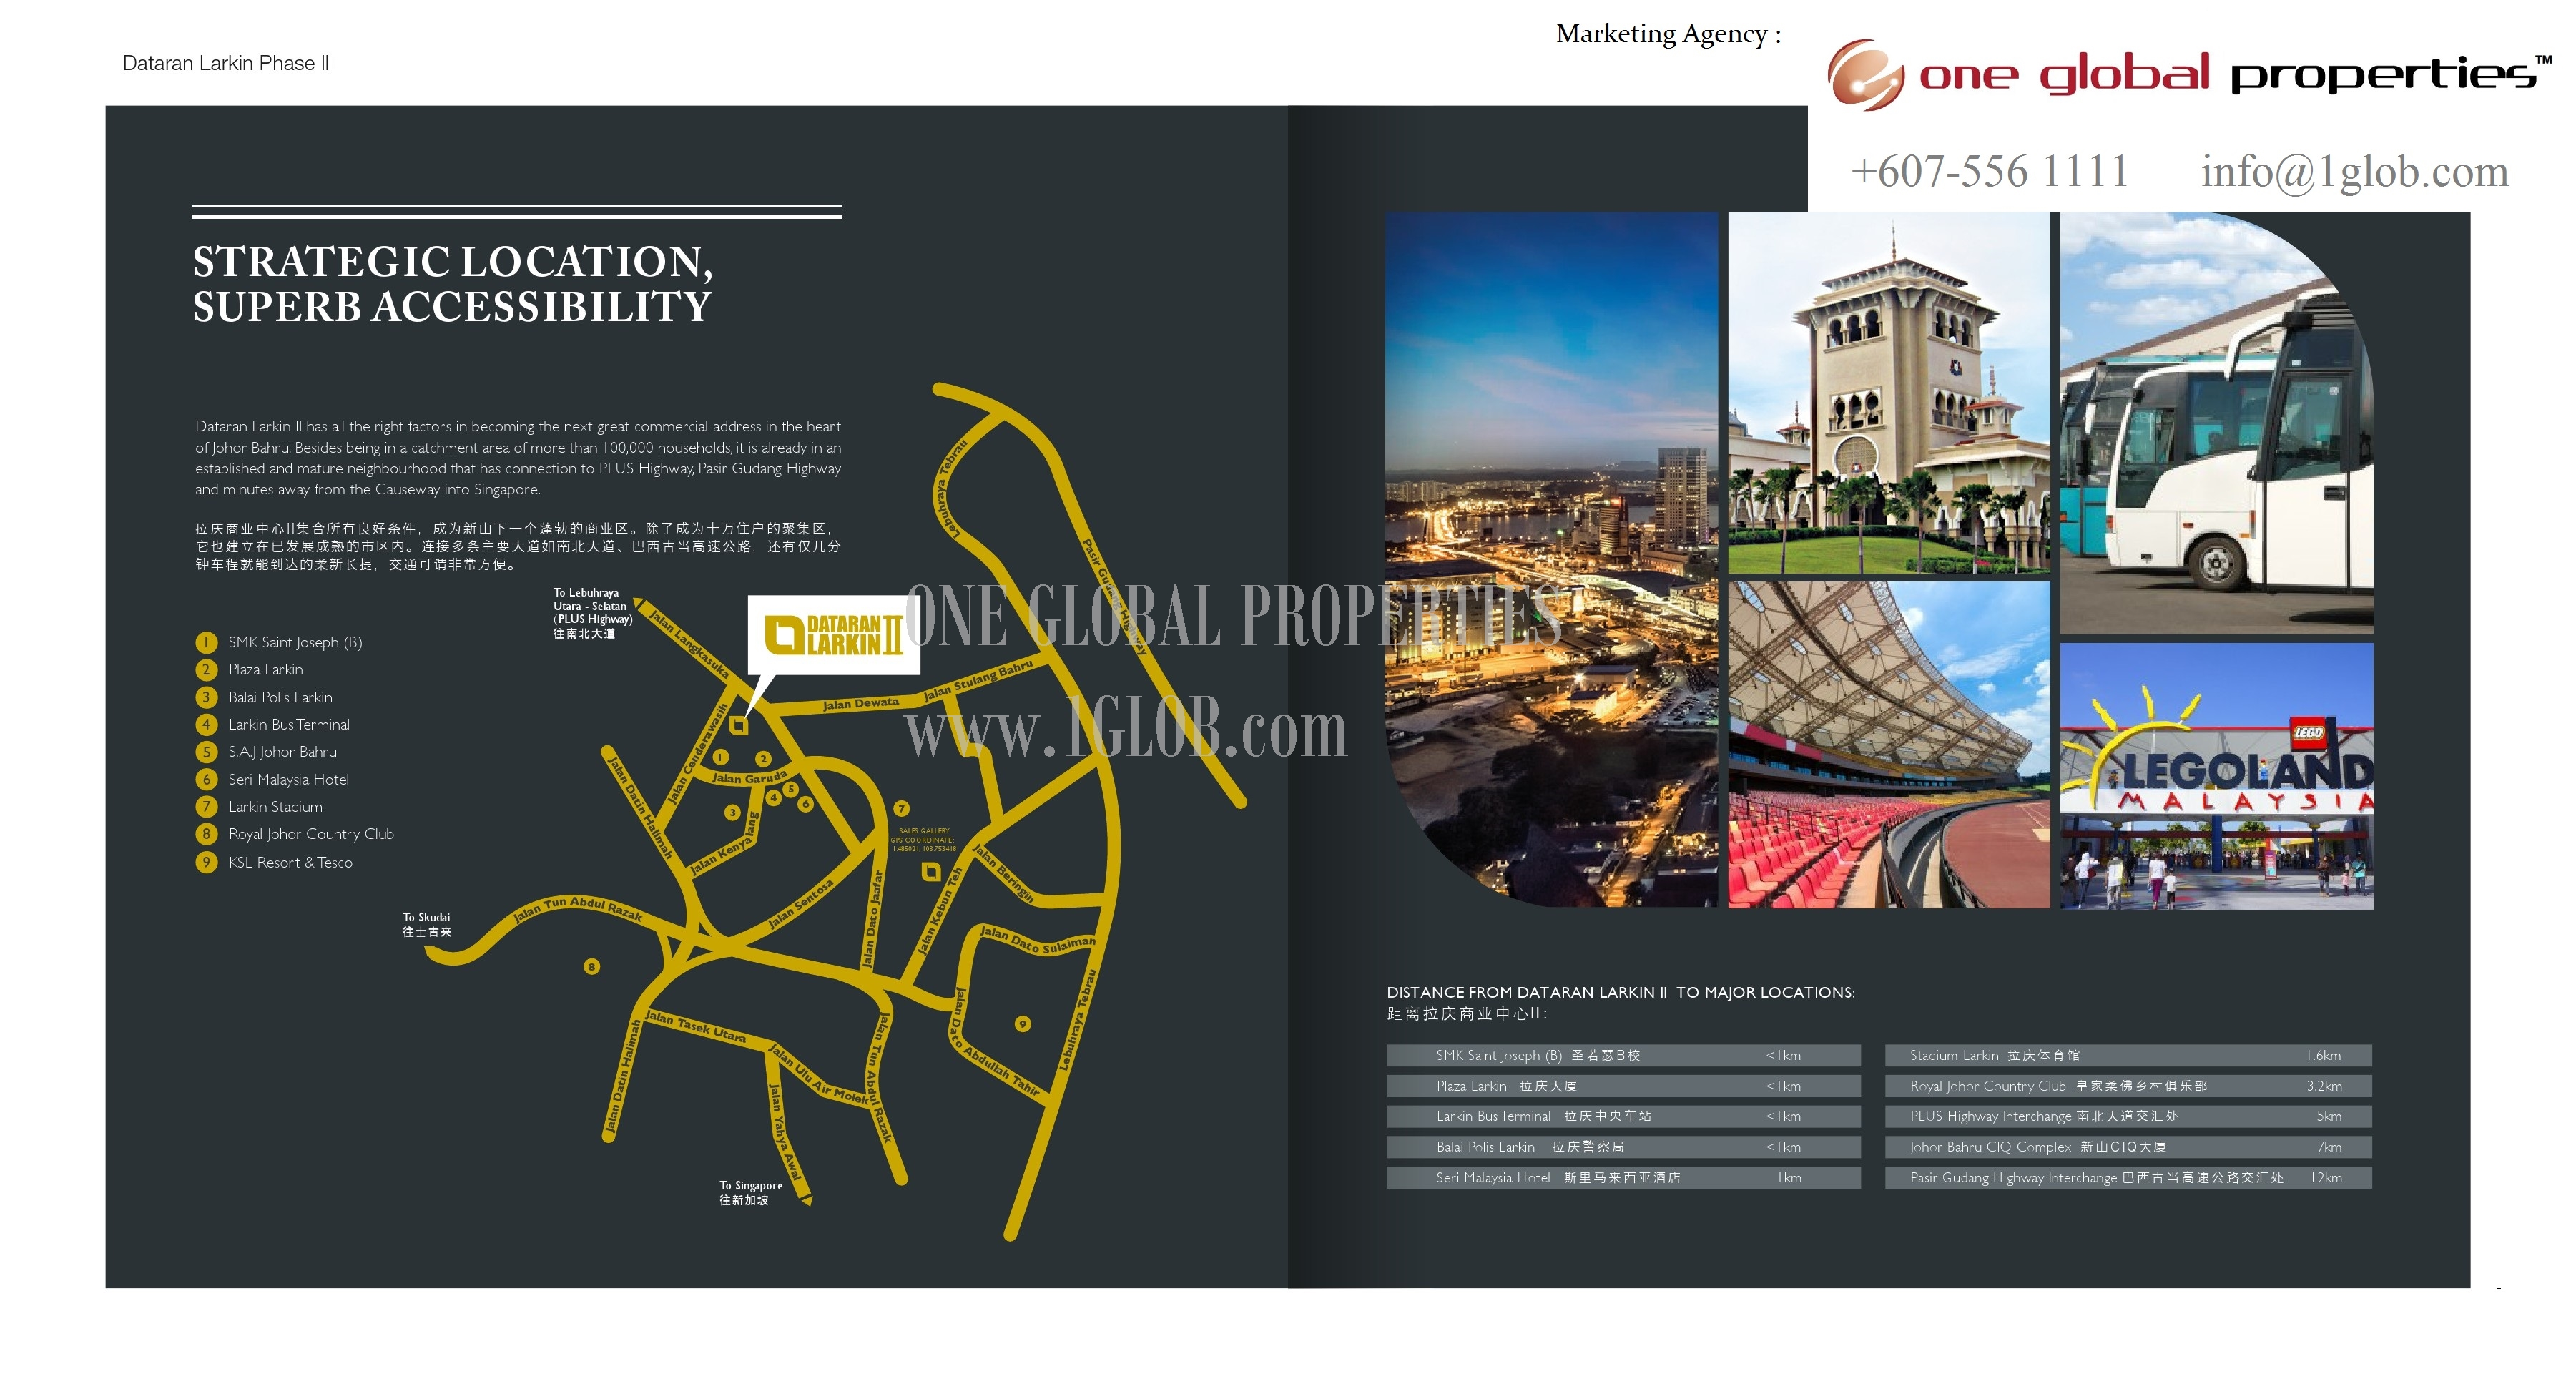 Dataran Larkin Project Brochure Page 3 (This link will open a PDF document)